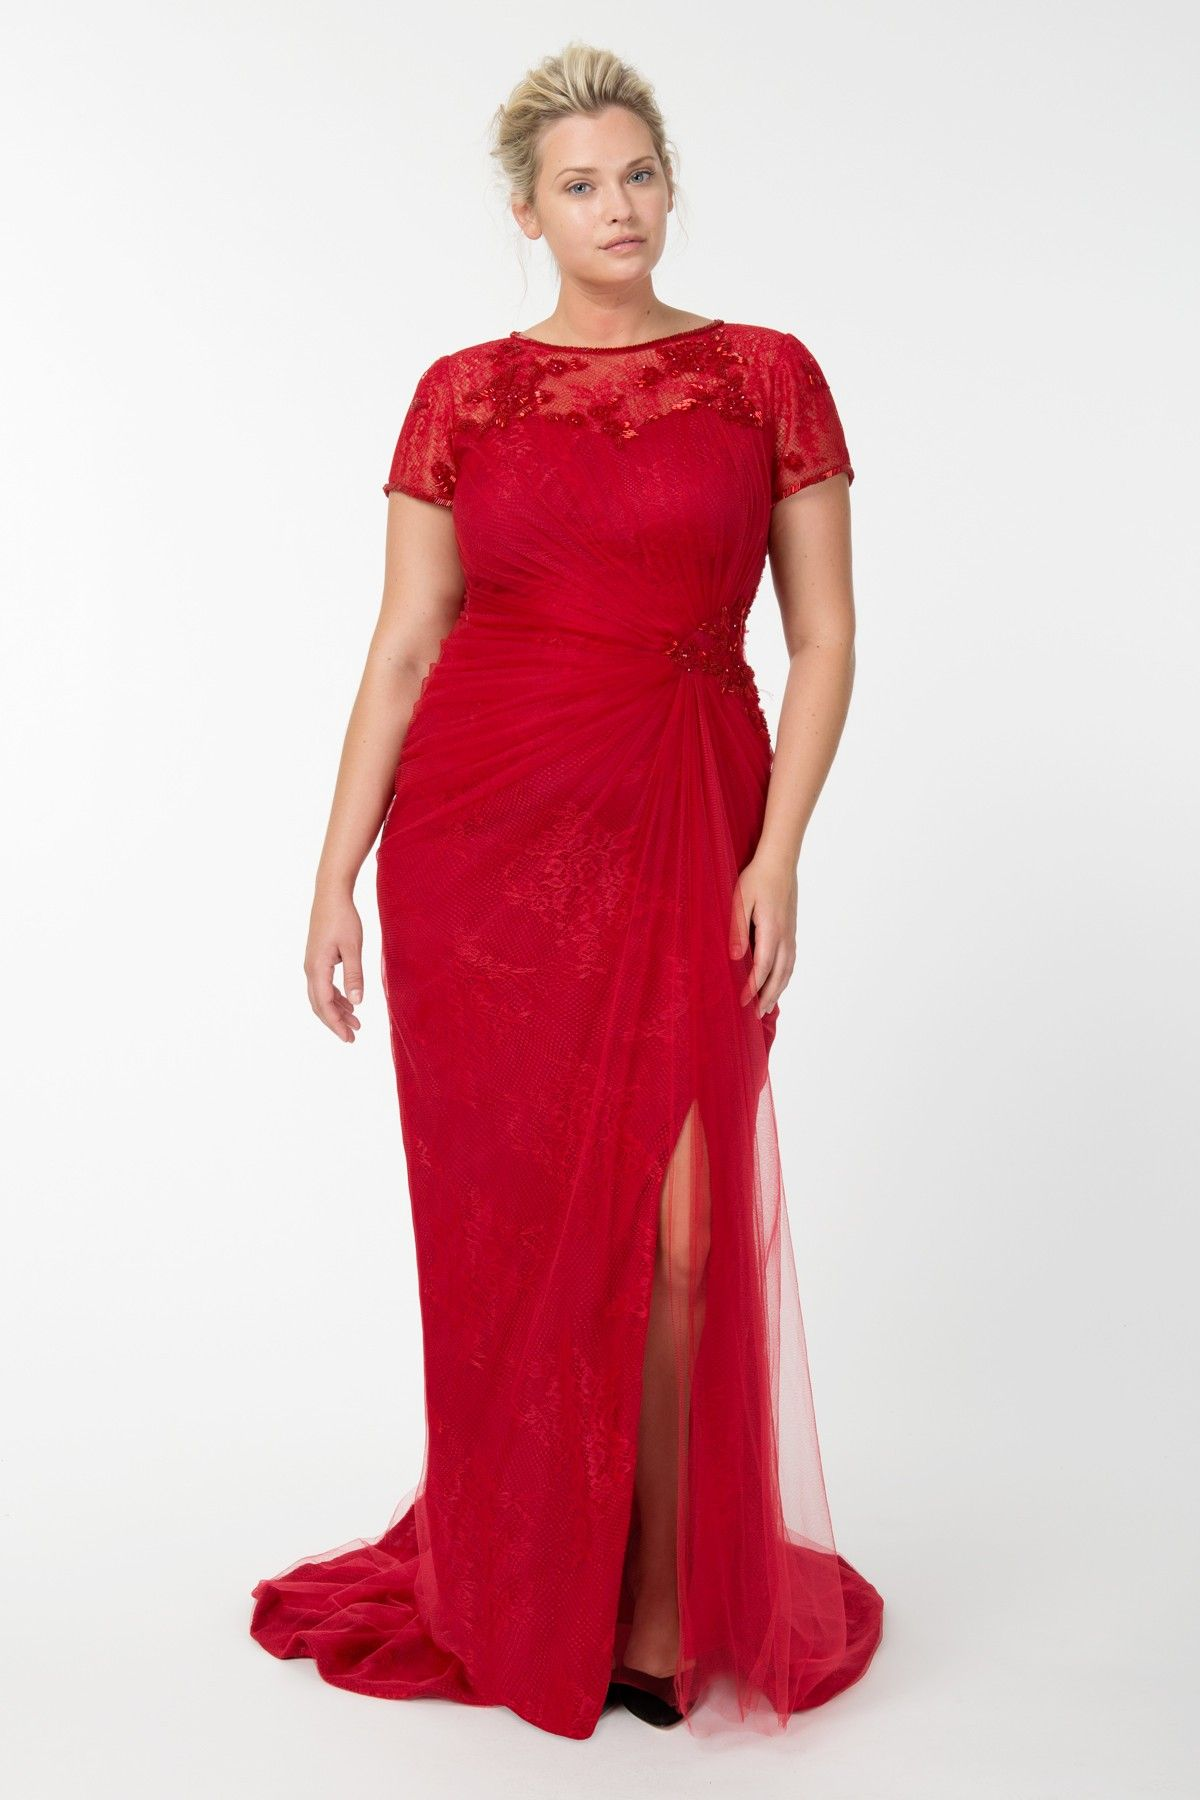 Christmas Ball Gowns Plus Size.4 Christmas Dresses For Women Red In 2019 Plus Size